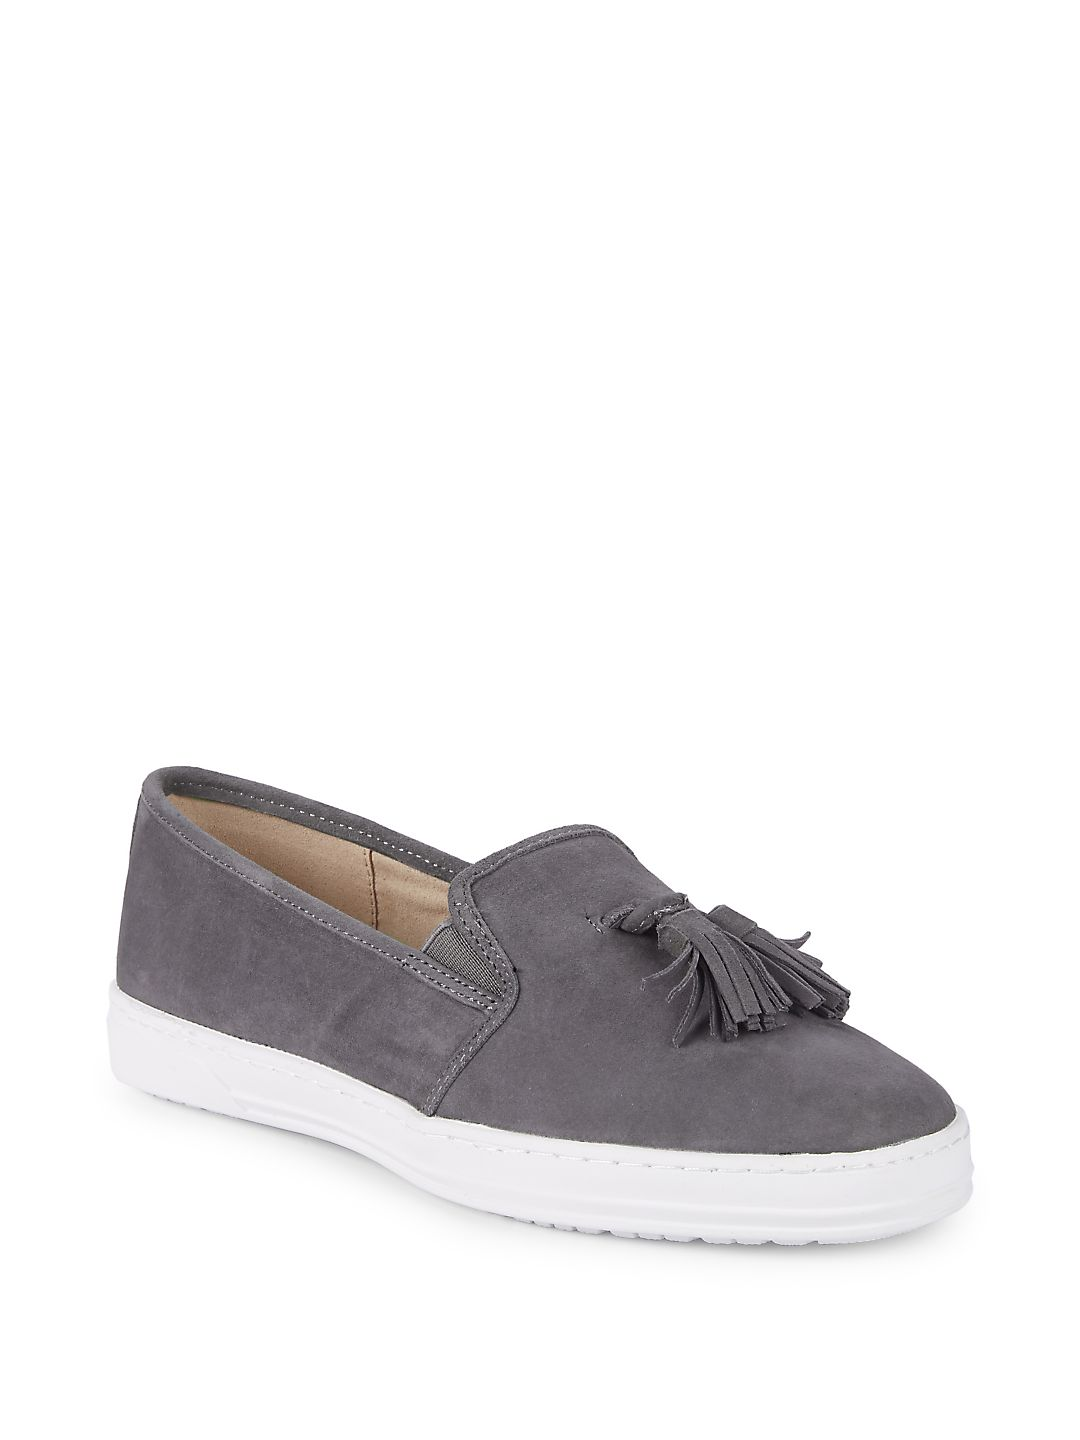 Zane Slip-On Suede Sneakers